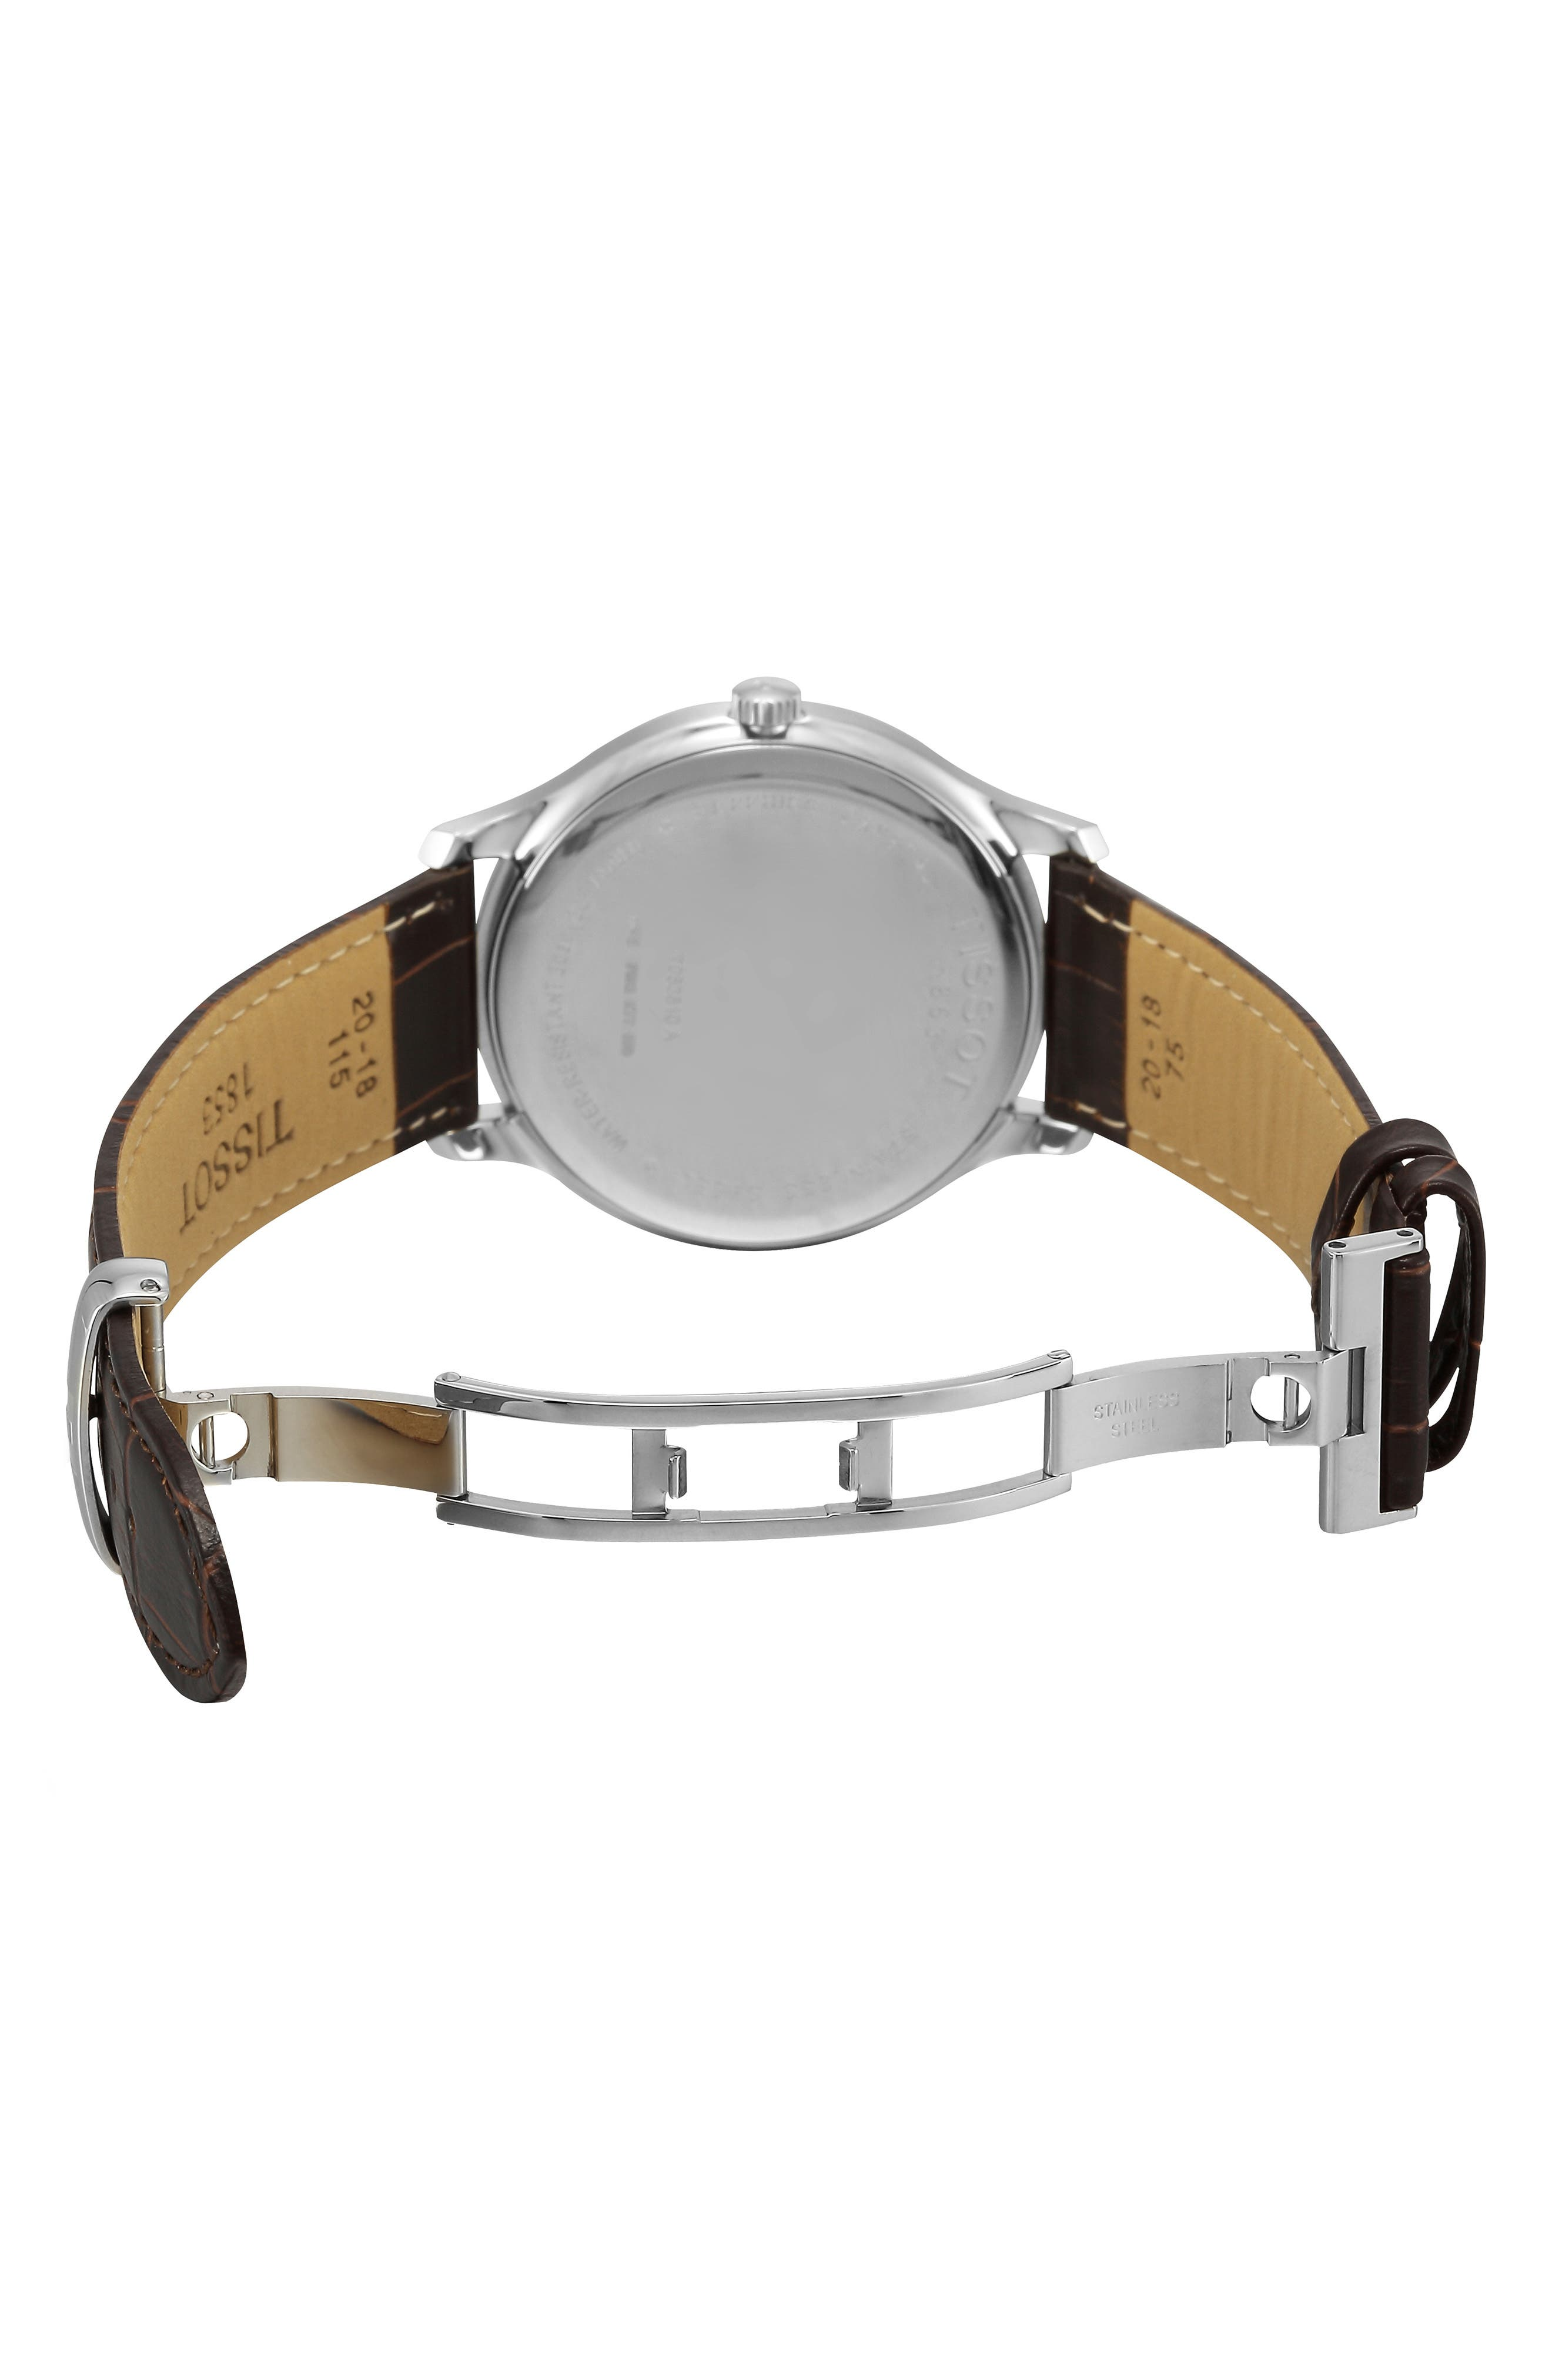 TISSOT, Tradition Leather Strap Watch, 42mm, Alternate thumbnail 6, color, BROWN/ SILVER